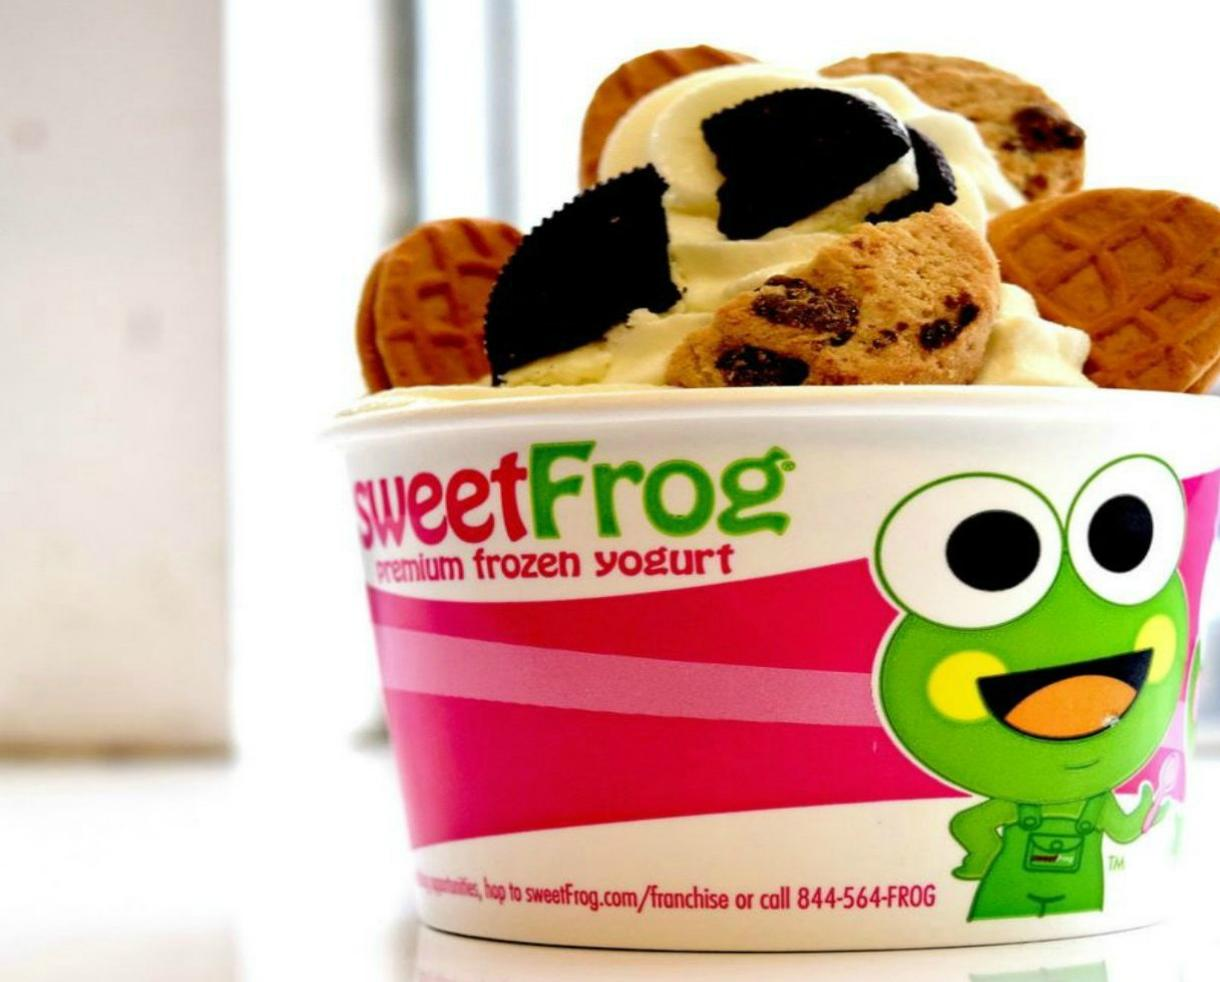 $10 for $20 Worth of Sweet Frog Premium Frozen Yogurt